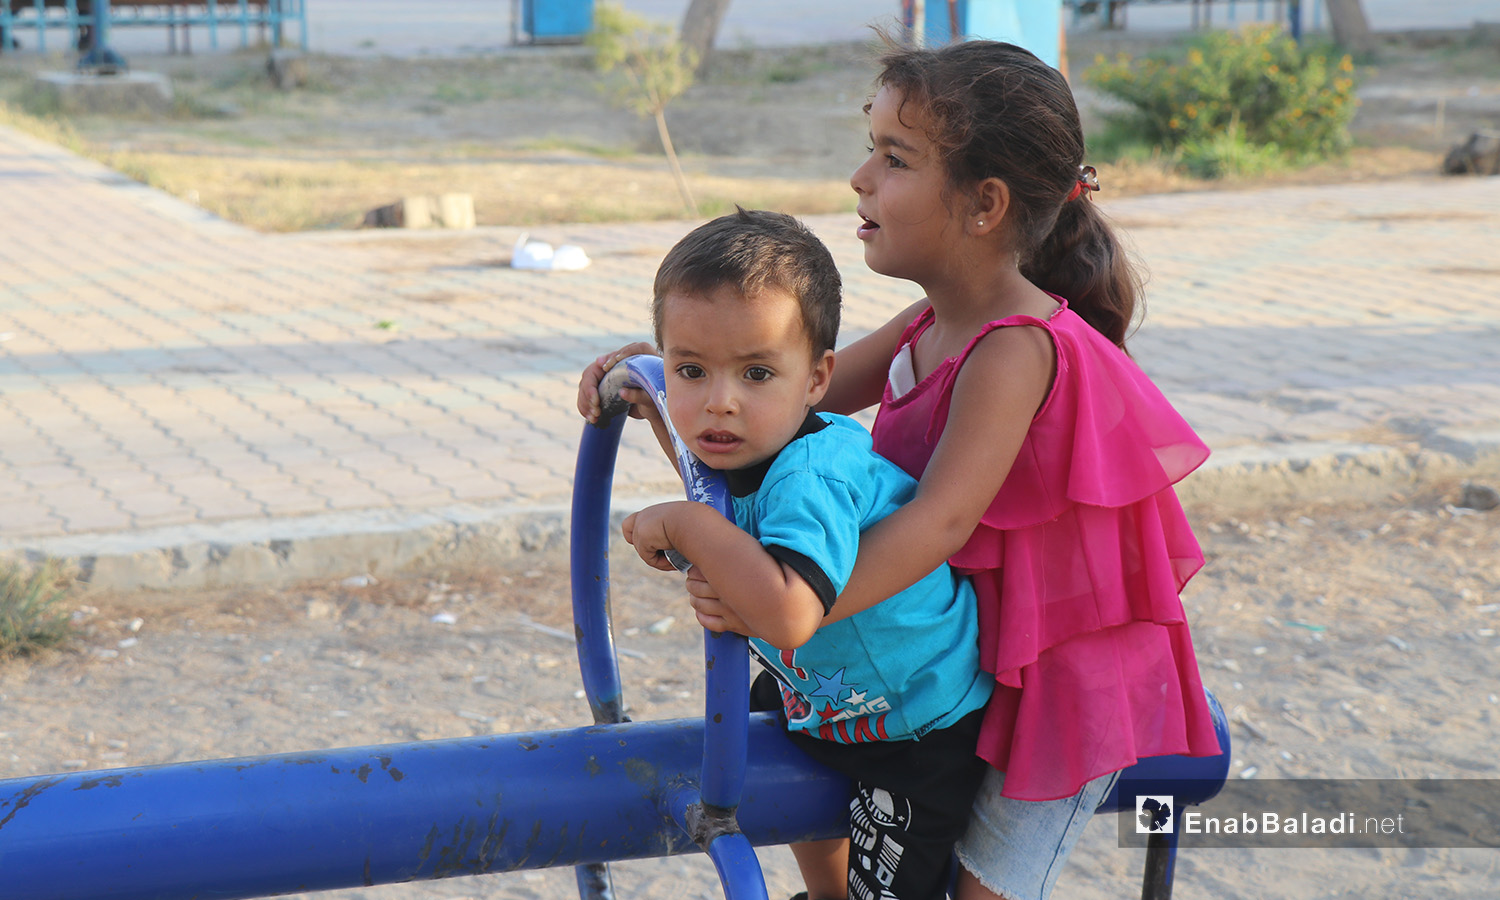 Two children having fun in one of the parks in al-Raqqa city  - 26 July 2020 (Enab Baladi / Abdul Aziz Saleh)